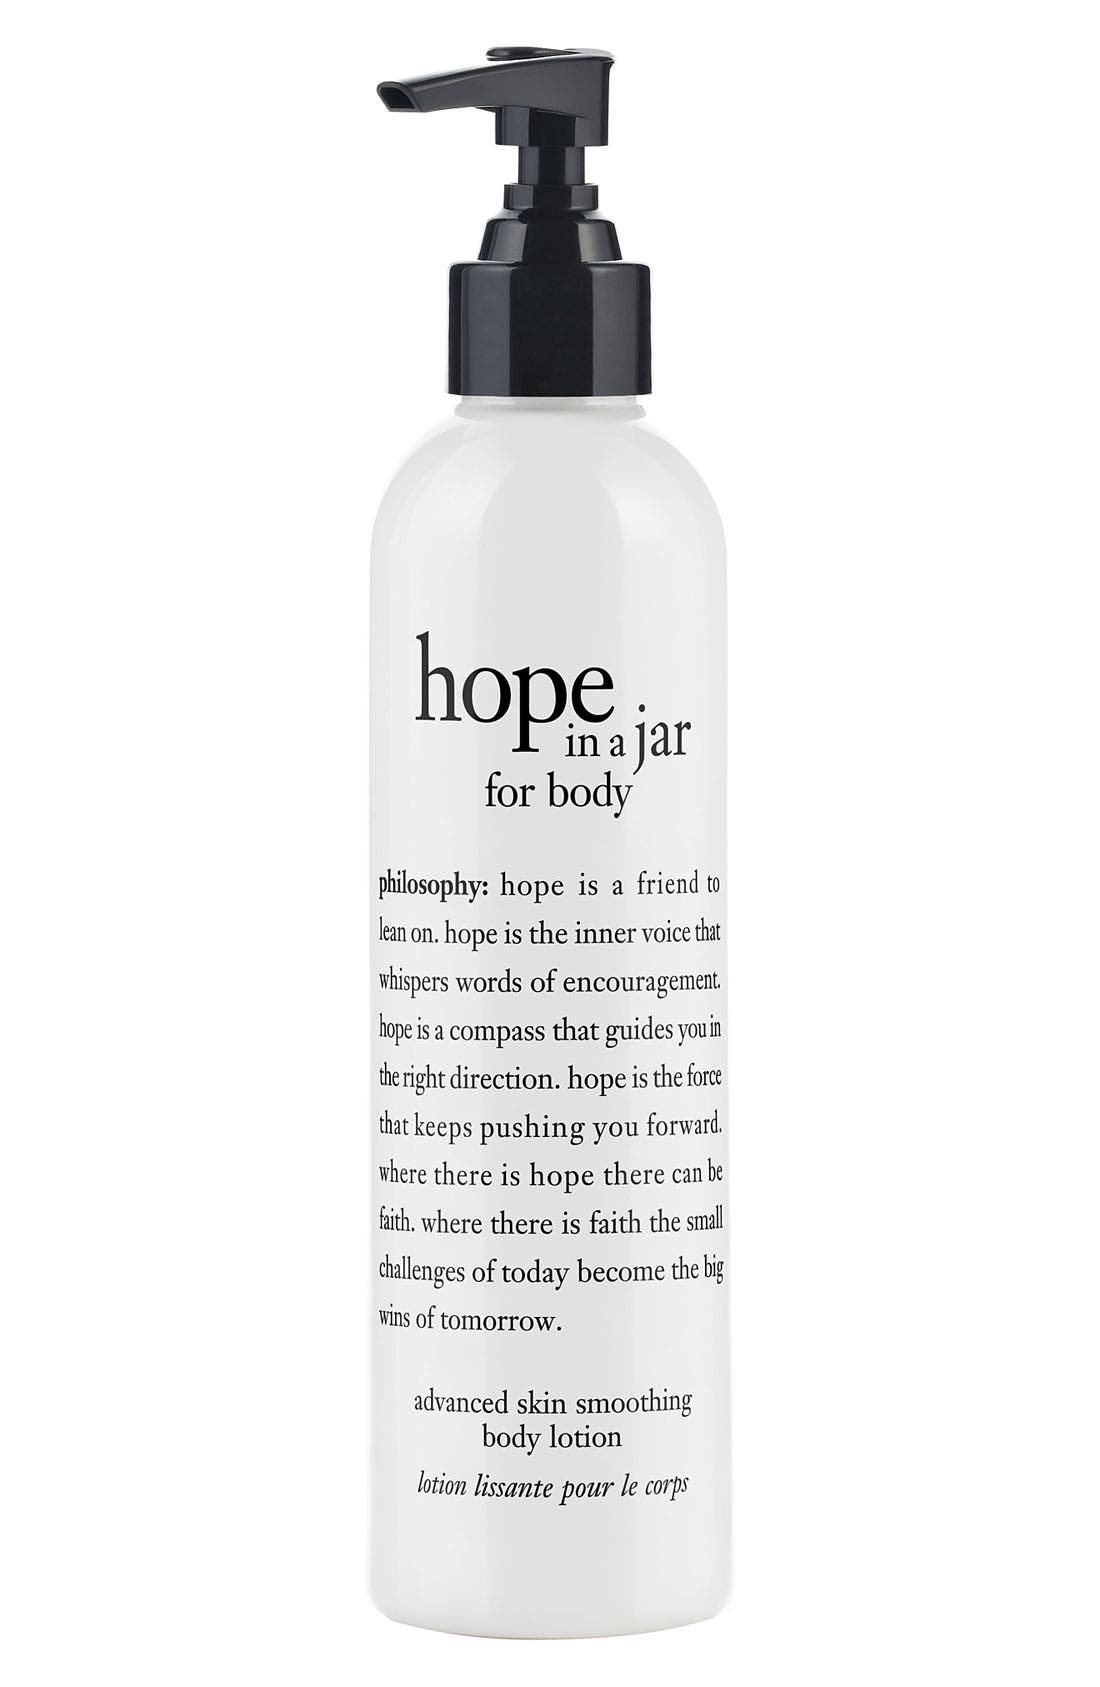 'hope in a jar for body' advanced skin smoothing body lotion, Main, color, 000